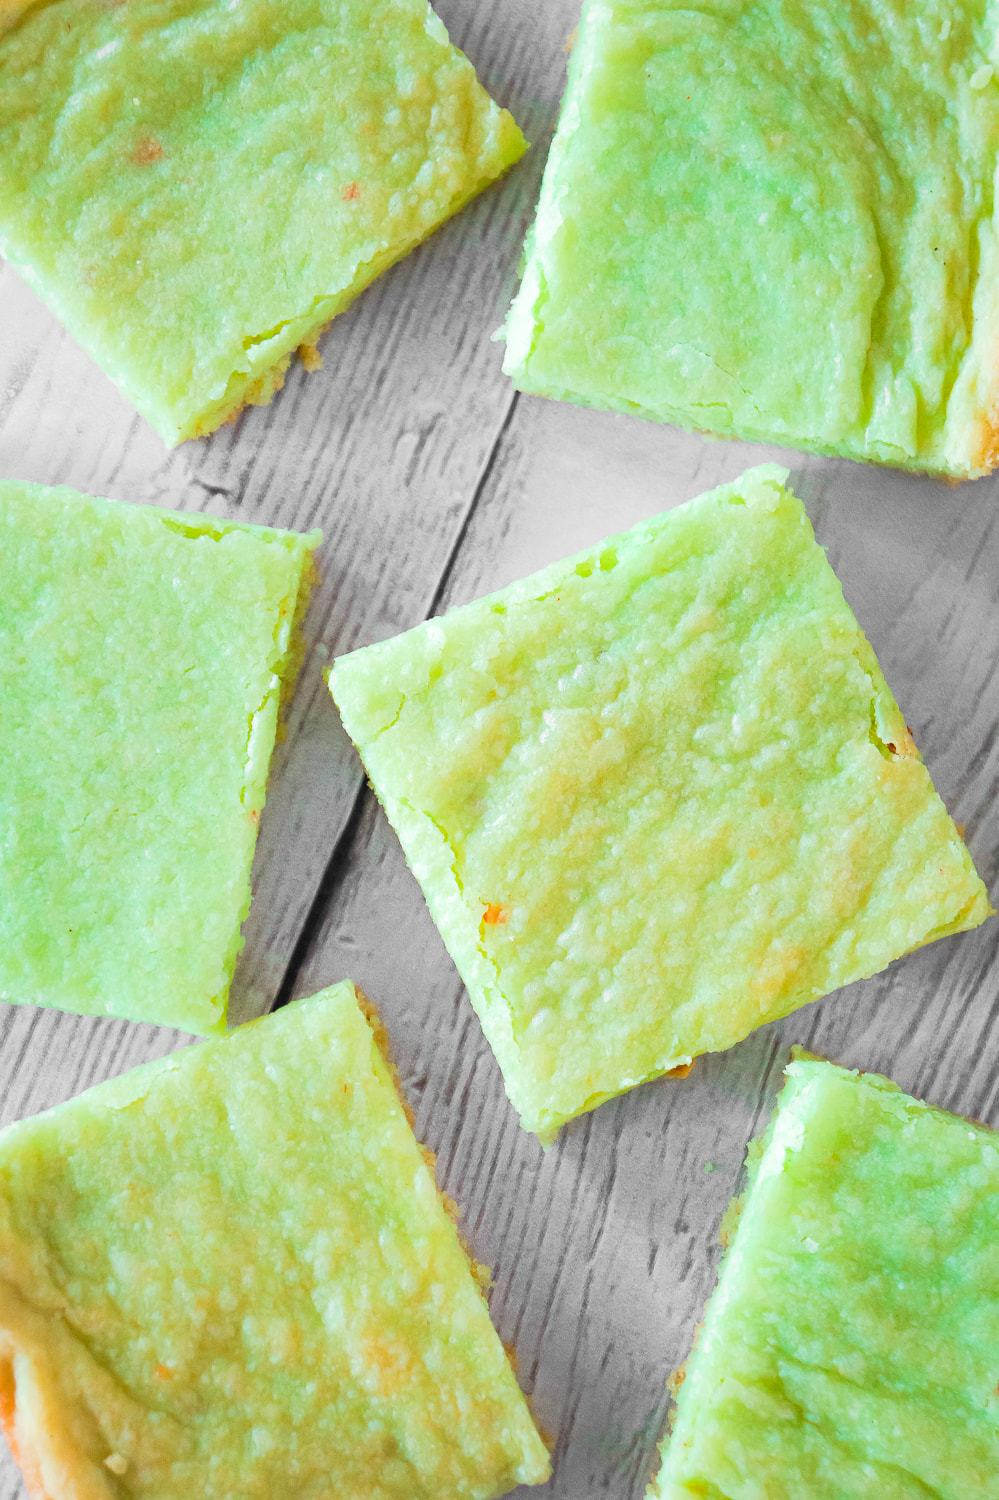 Pistachio Pudding Sugar Cookie Bars are soft, chewy and delicious. This super easy cookie bar recipe uses pistachio instant pudding mix and Betty Crocker sugar cookie mix.